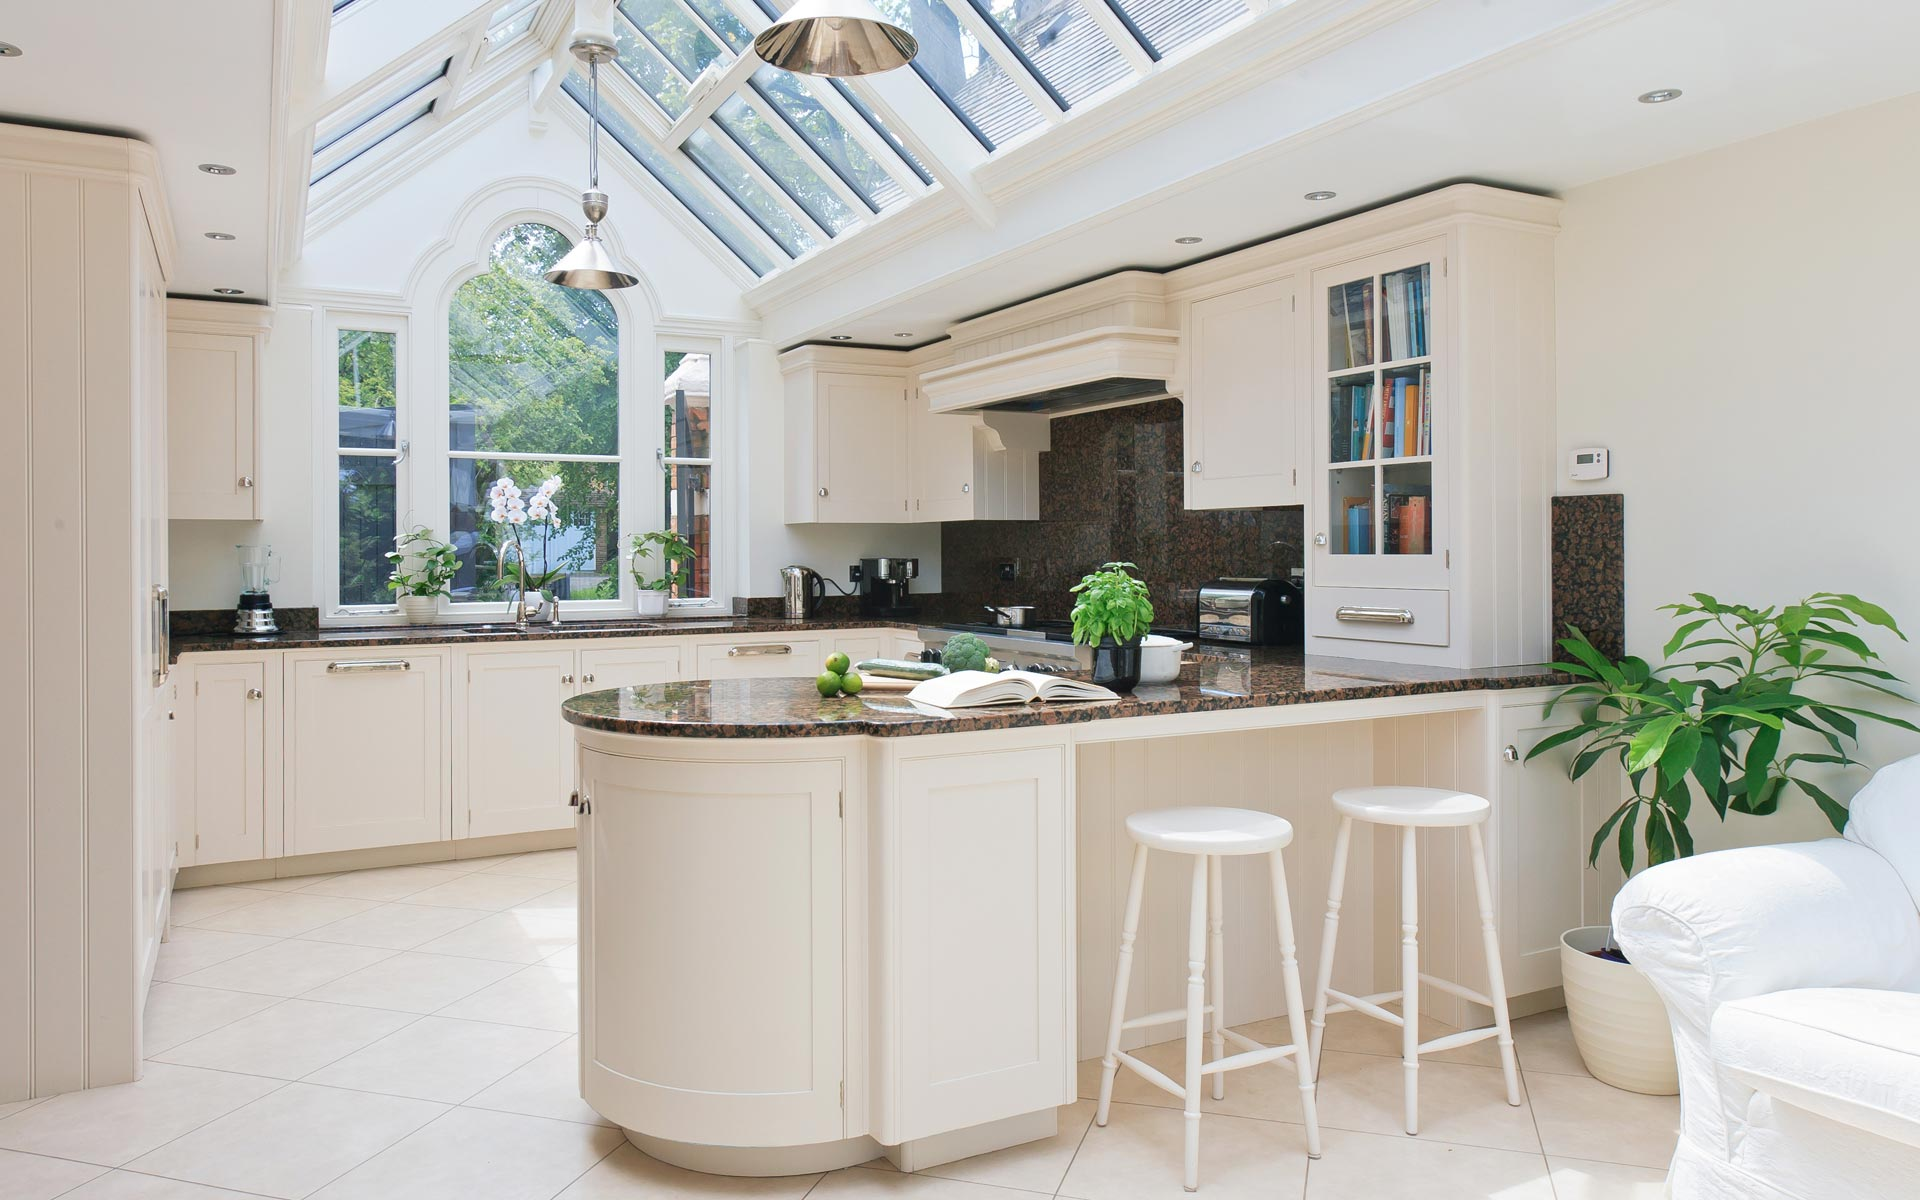 Your conservatory a modern kitchen with glazed addition to open up the room aloadofball Image collections